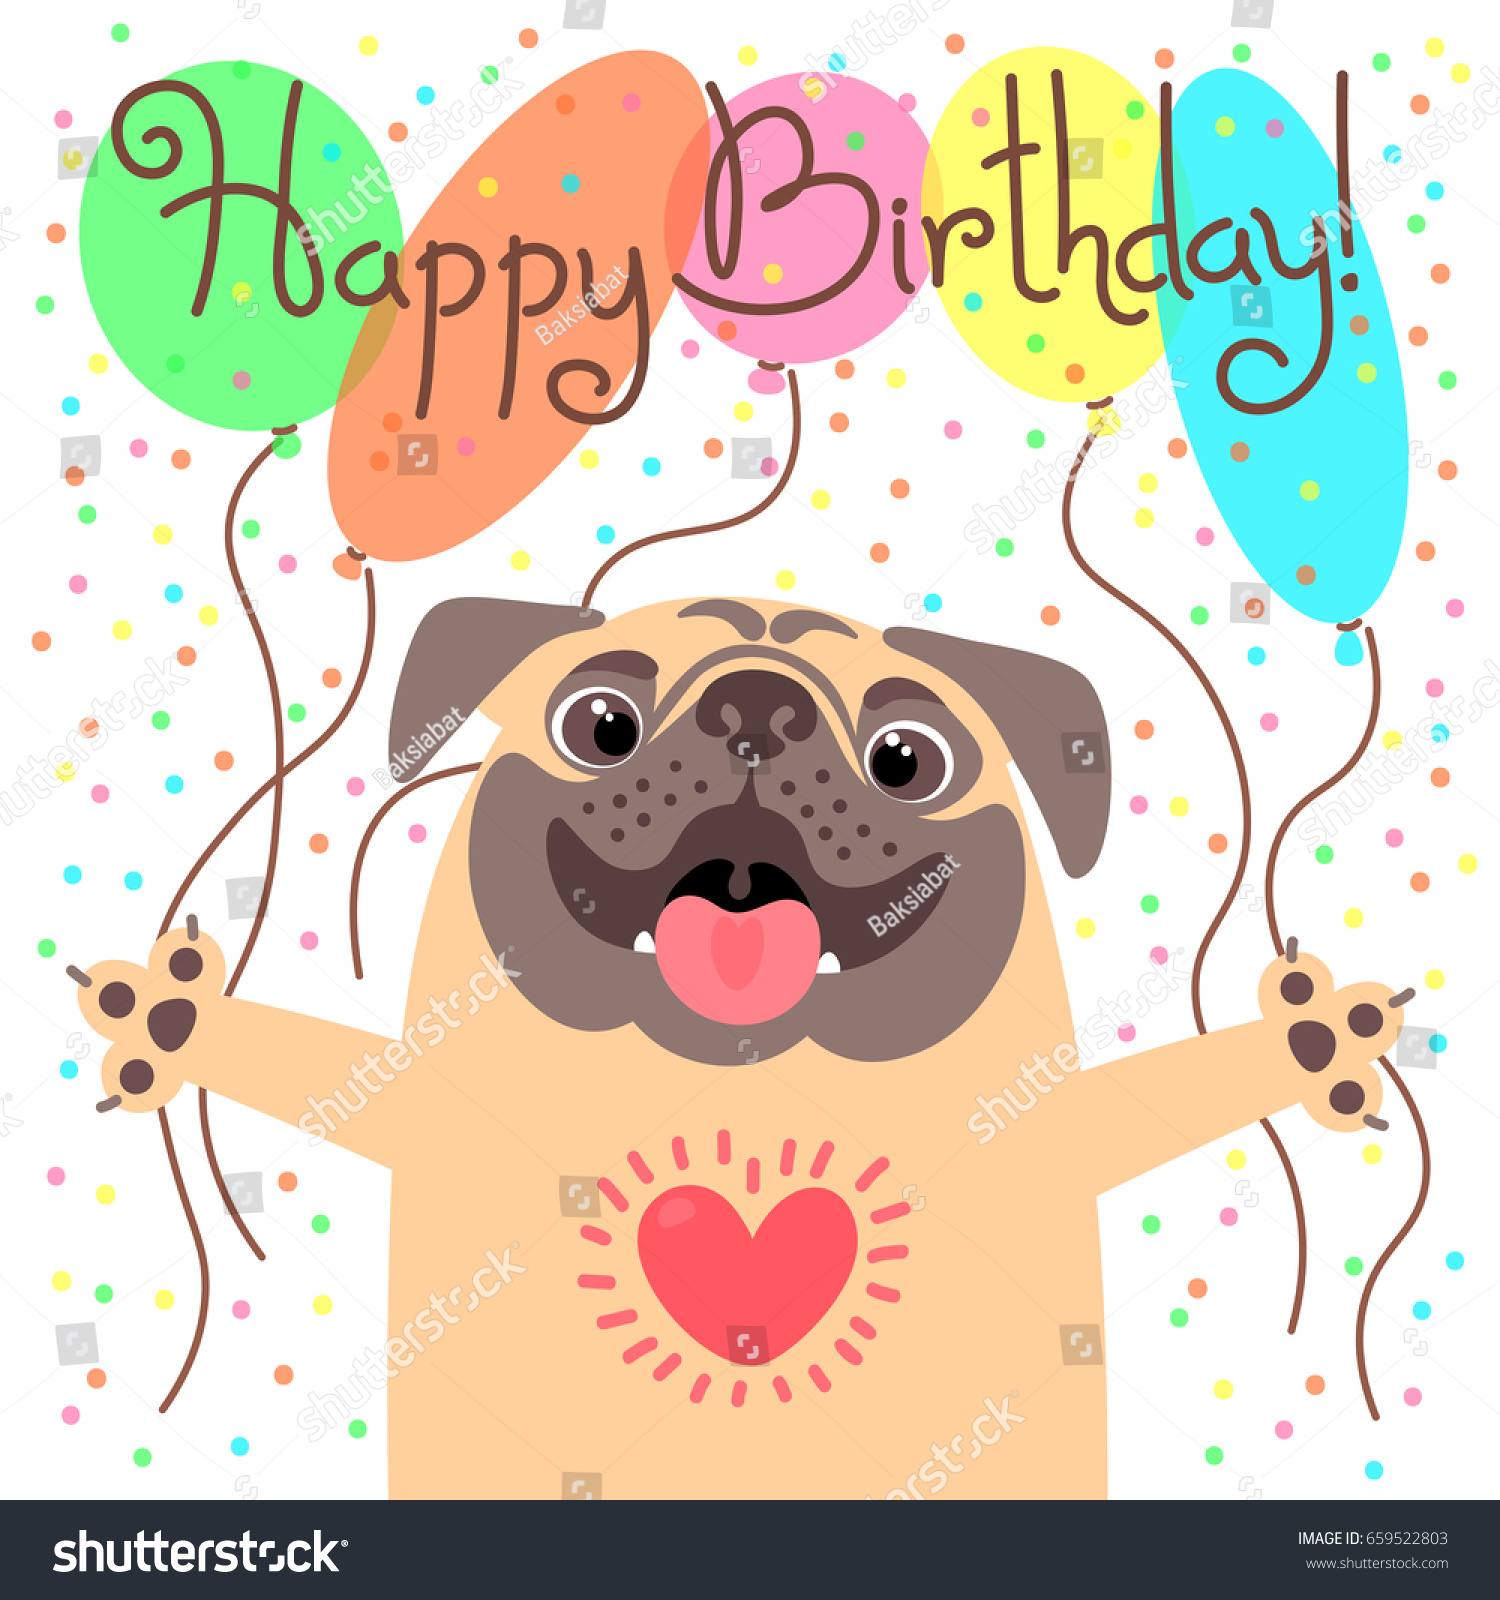 Cute Happy Birthday Card With Funny Puppy Loving Pug And Balloons Vector Illustration